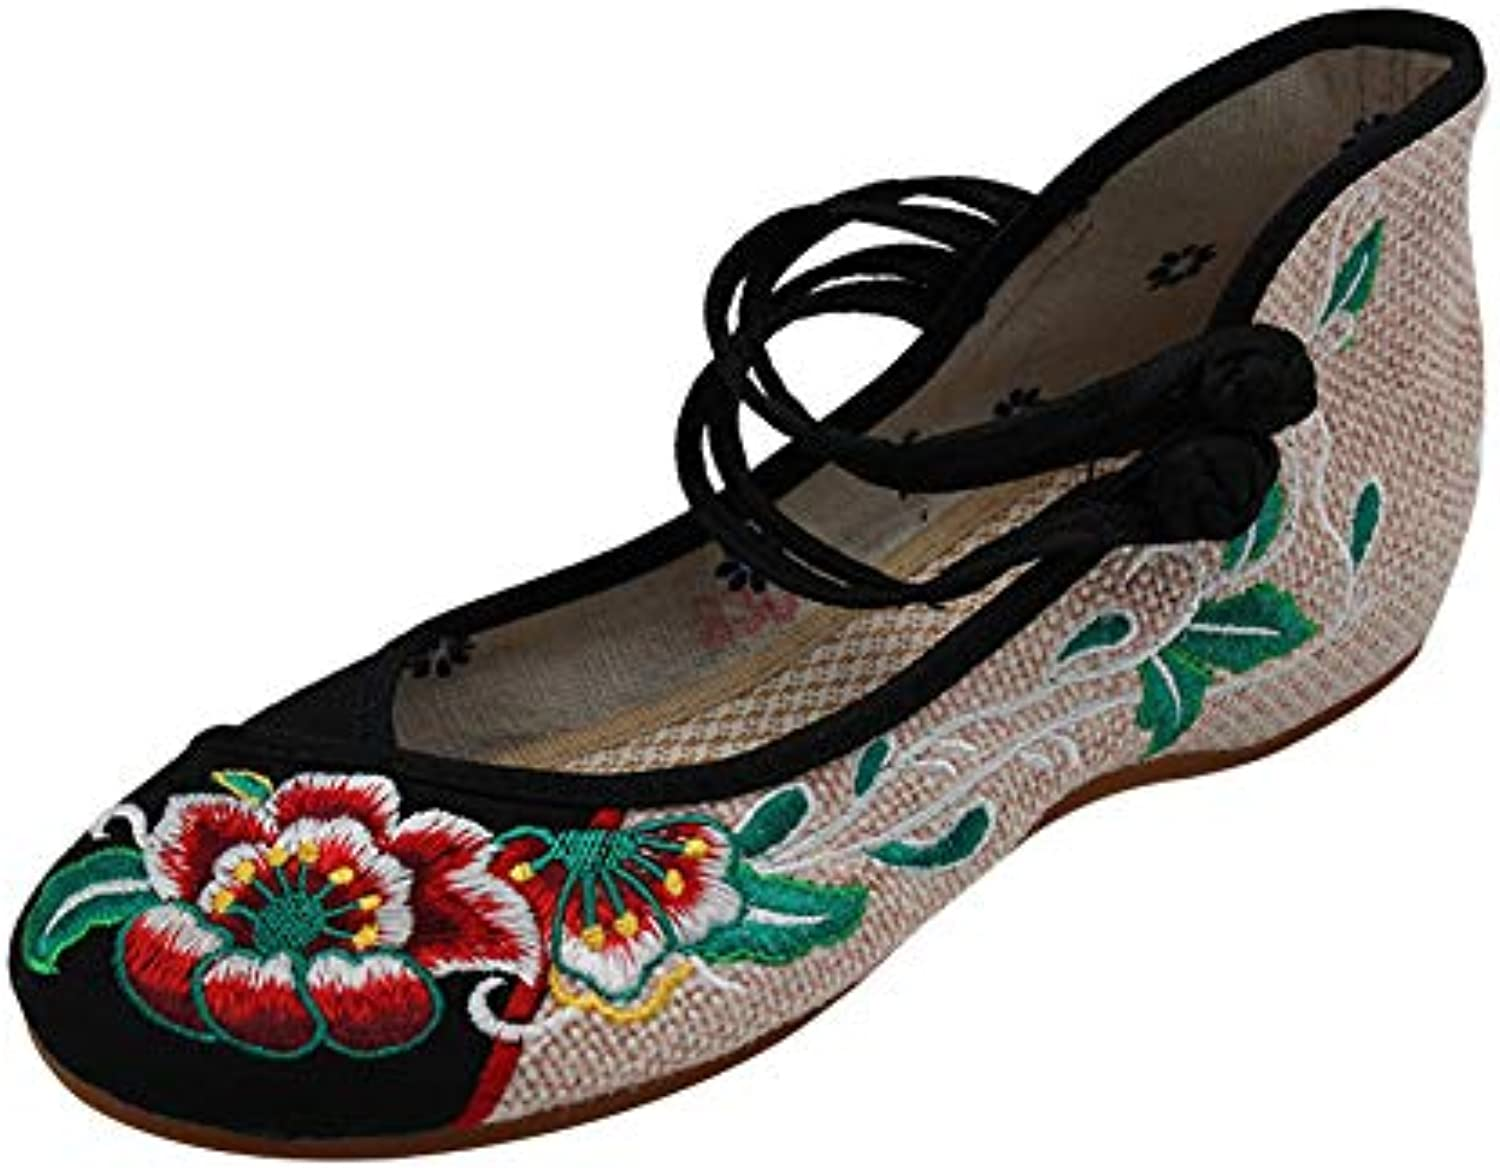 Tenthree Femmes Noir Toile Broderie Chaussures - Femme Femme - Chinois Old Beijing Traditionnel Chaussures Tissu Vintage...B07JW74HLDParent 0e3900